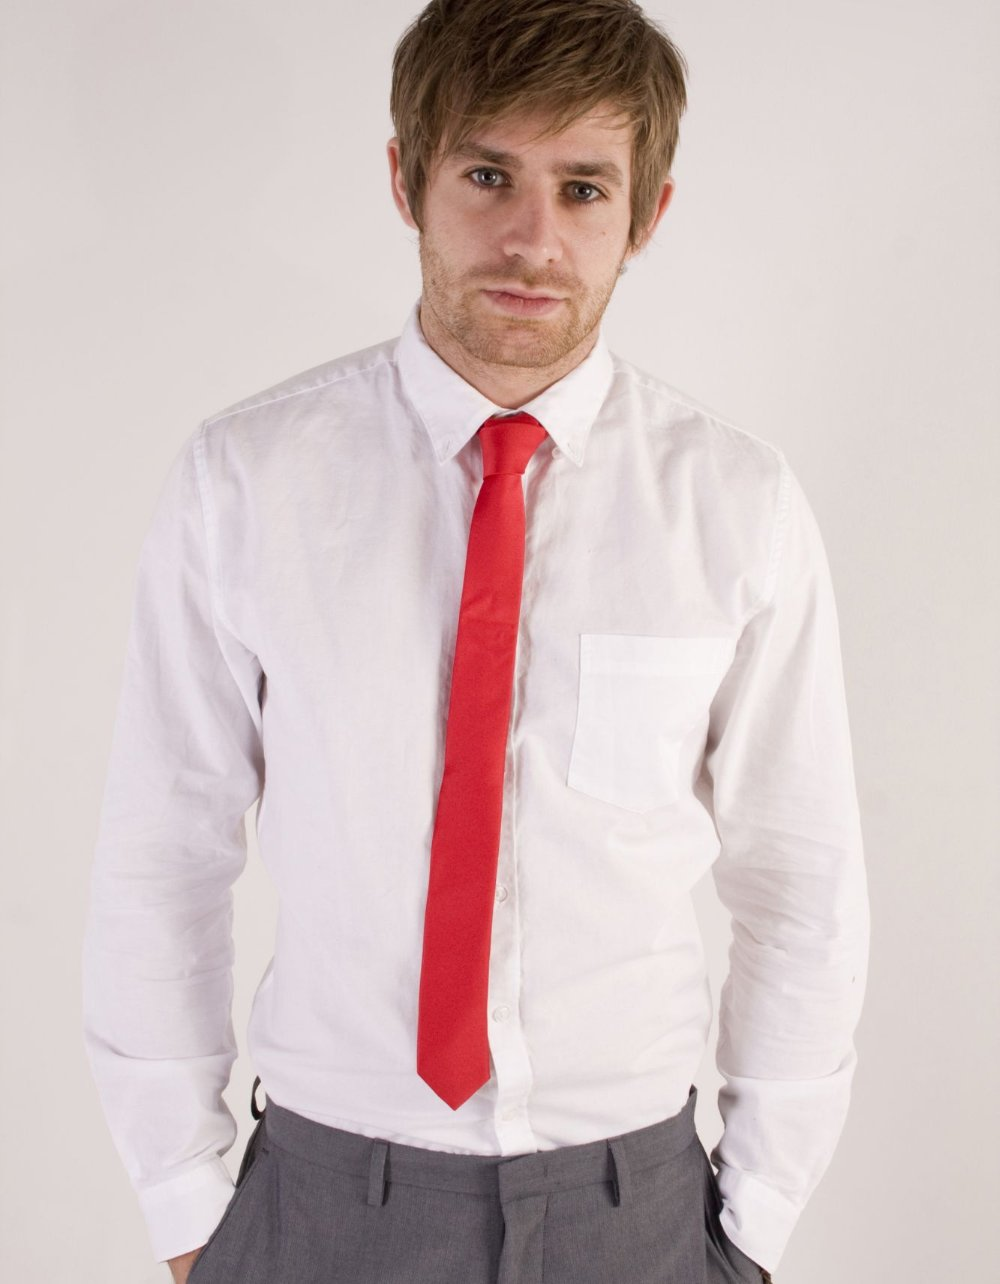 Mens Red Skinny Tie.jpg